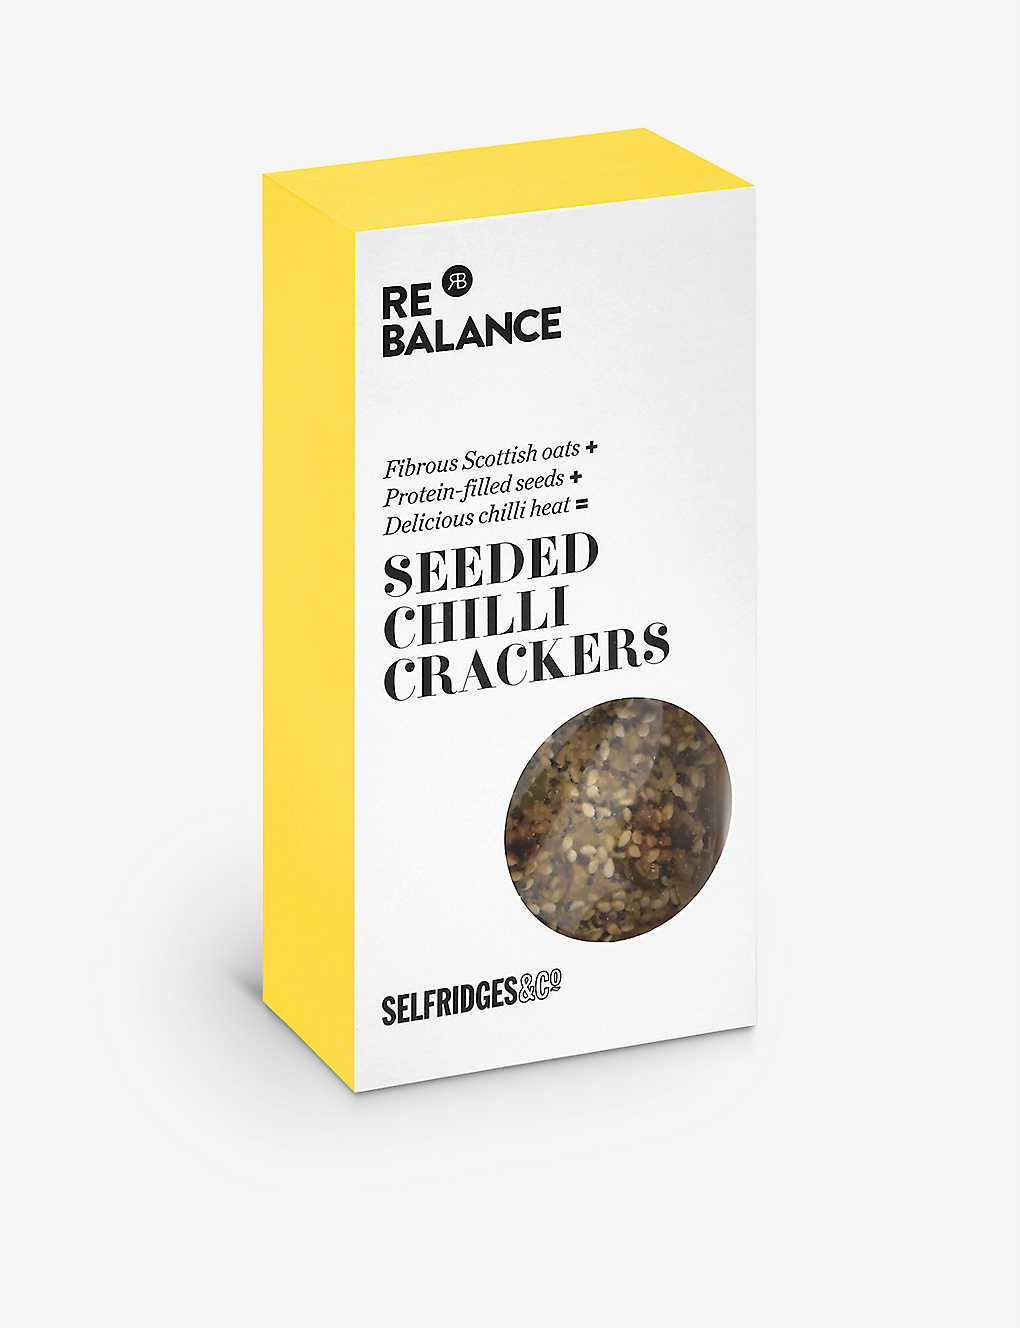 SELFRIDGES SELECTION: ReBalance seeded chilli crackers 80g